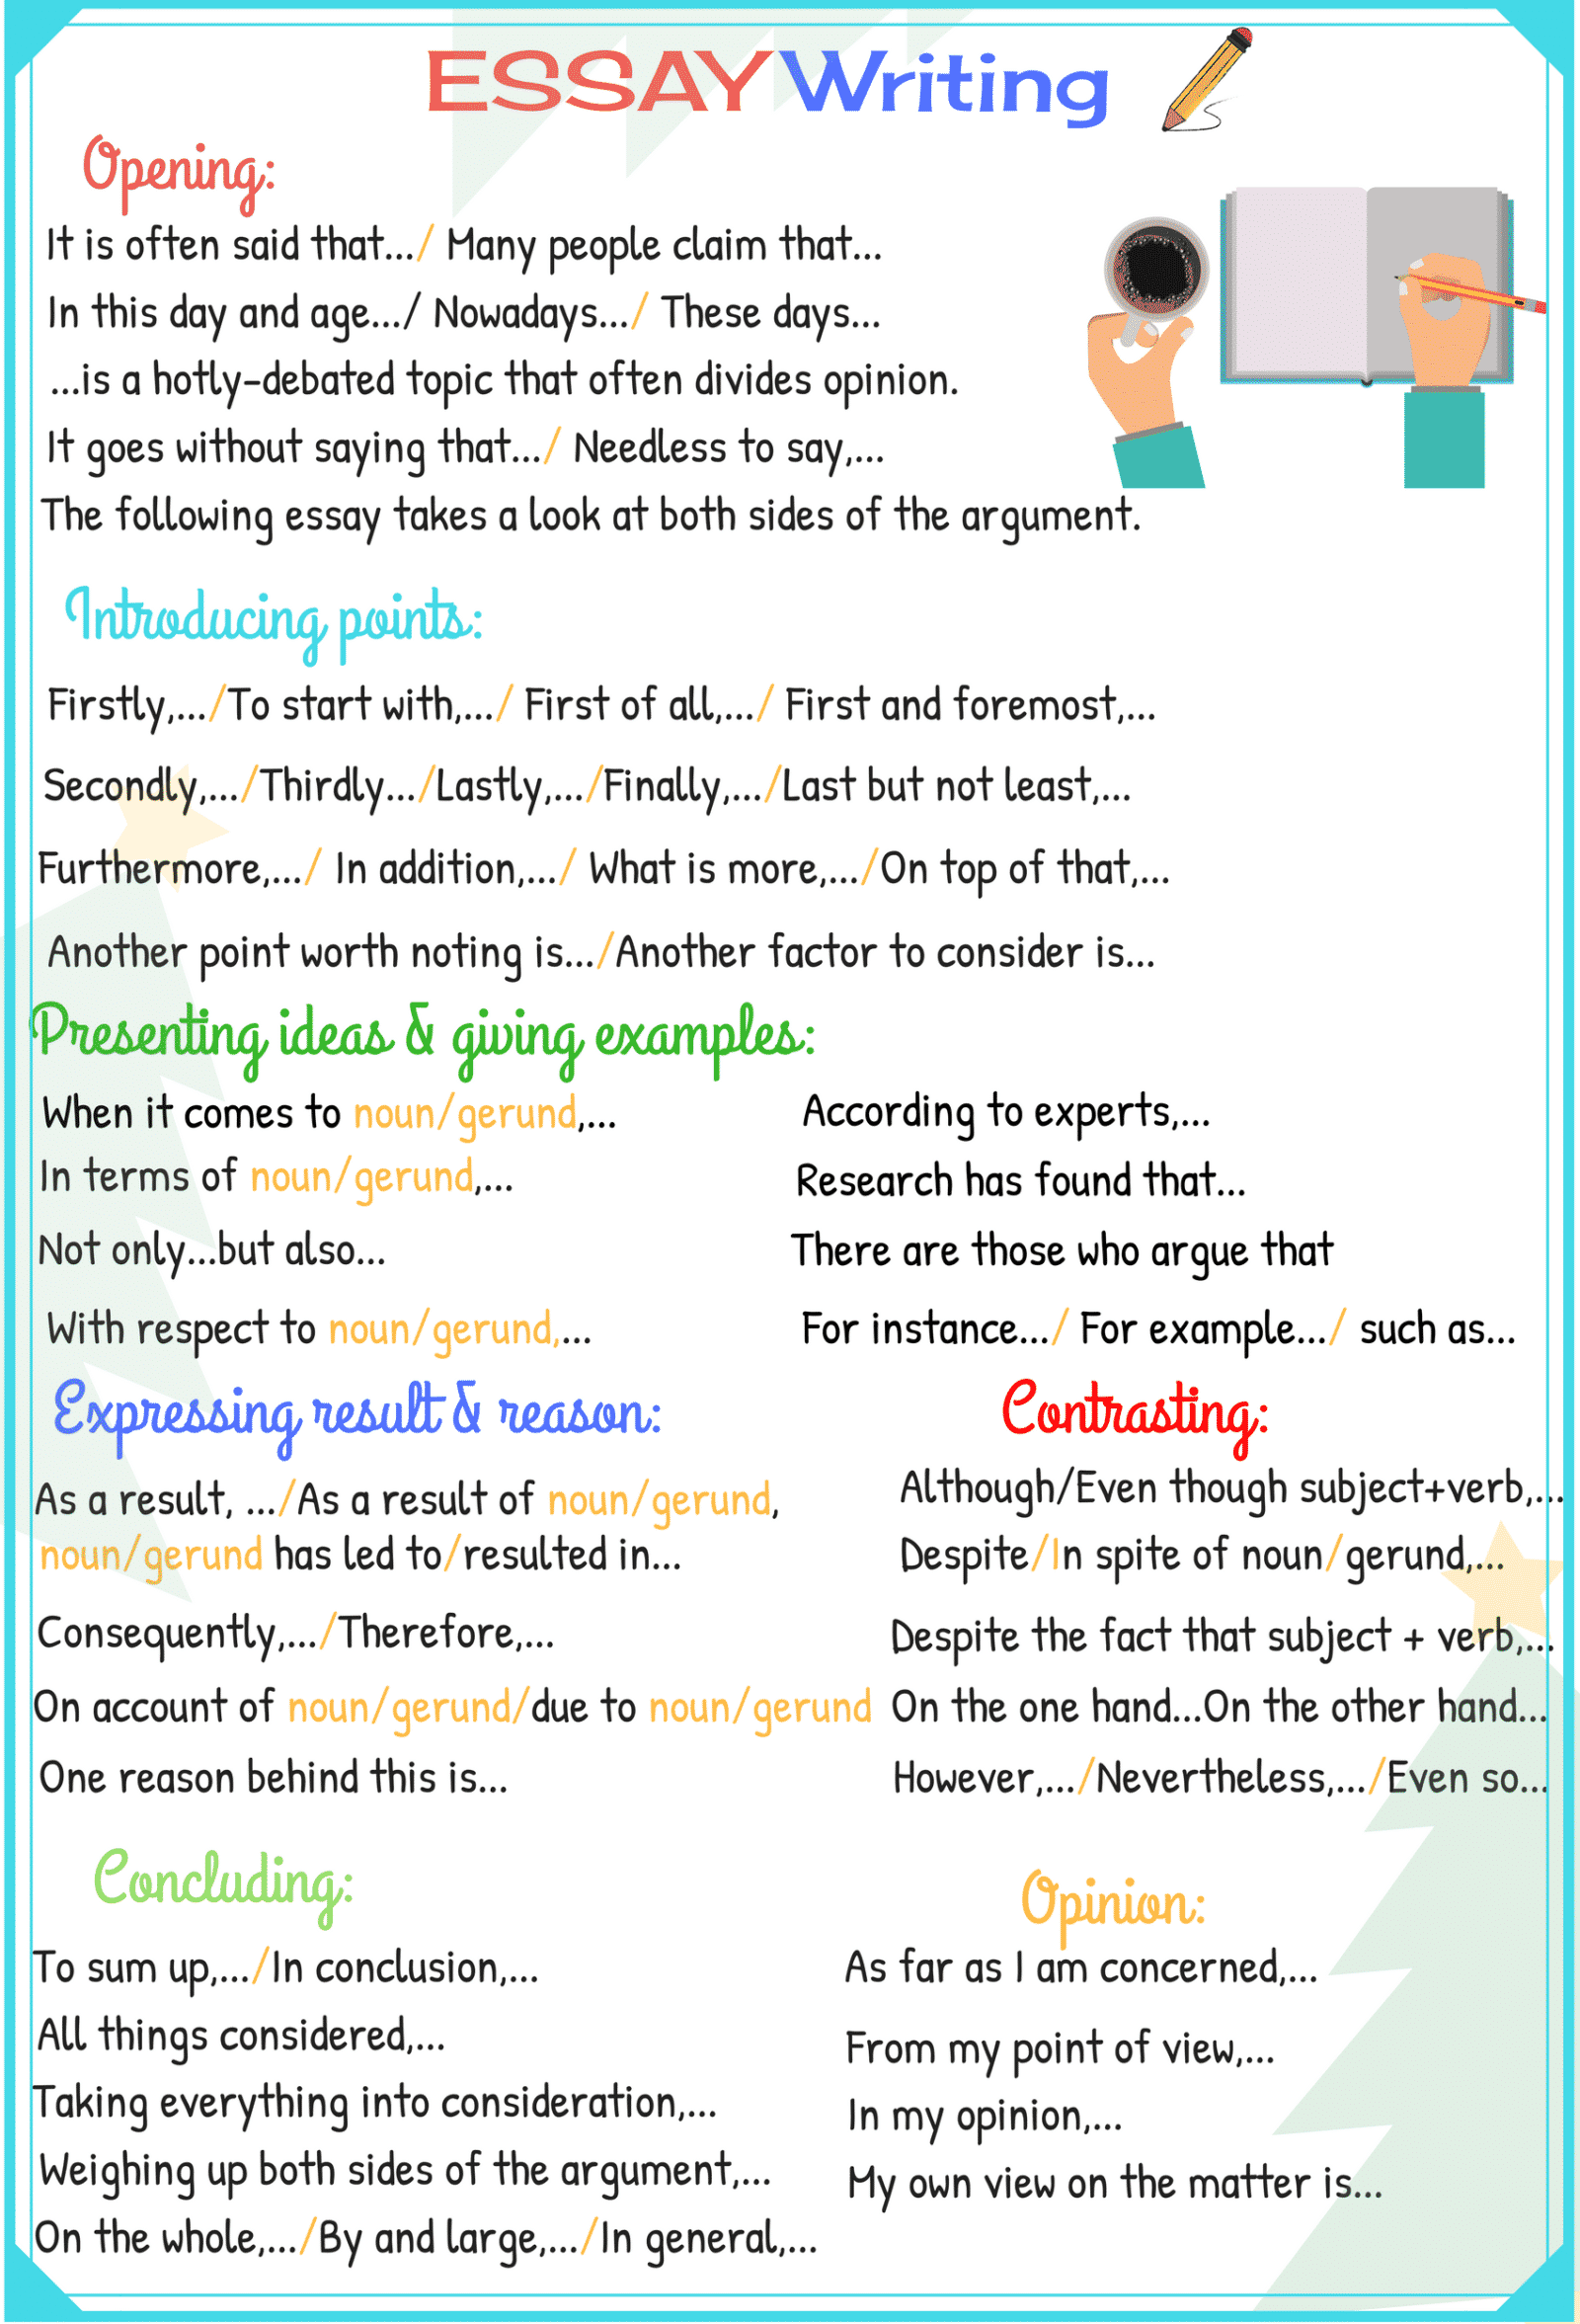 How to Write a Great Essay Quickly!